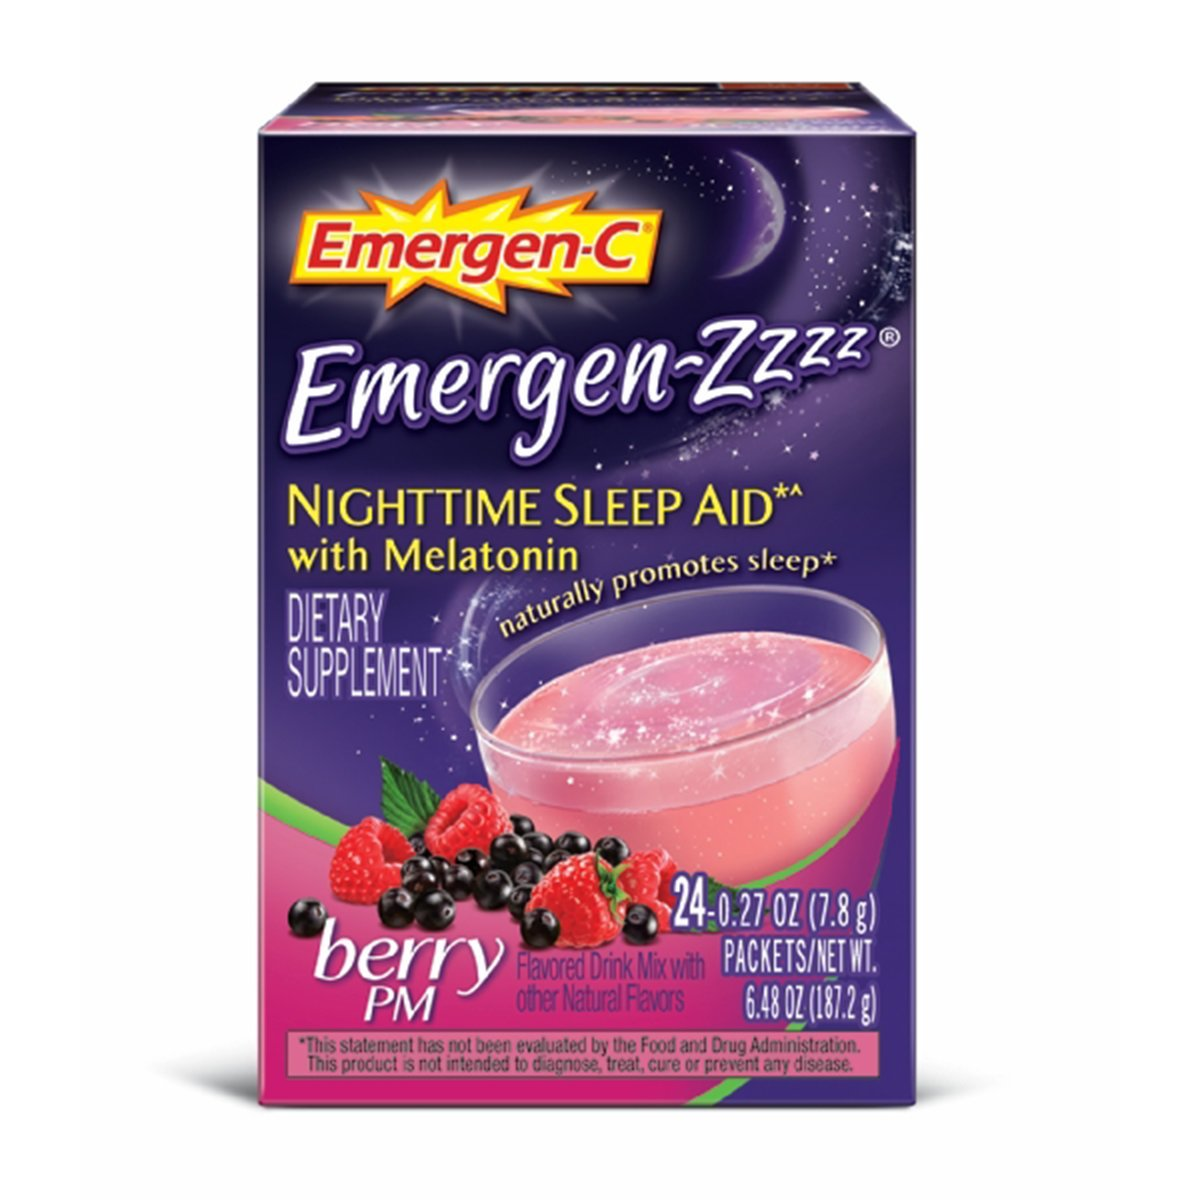 Emergen-C Emergen-Zzzz (24 Count, Berry PM Flavor) Dietary Supplement Fizzy Drink Mix Nighttime Sleep Aid with Melatonin with 500mg Vitamin C, 0.29 Ounce Packets (Pack of 12)